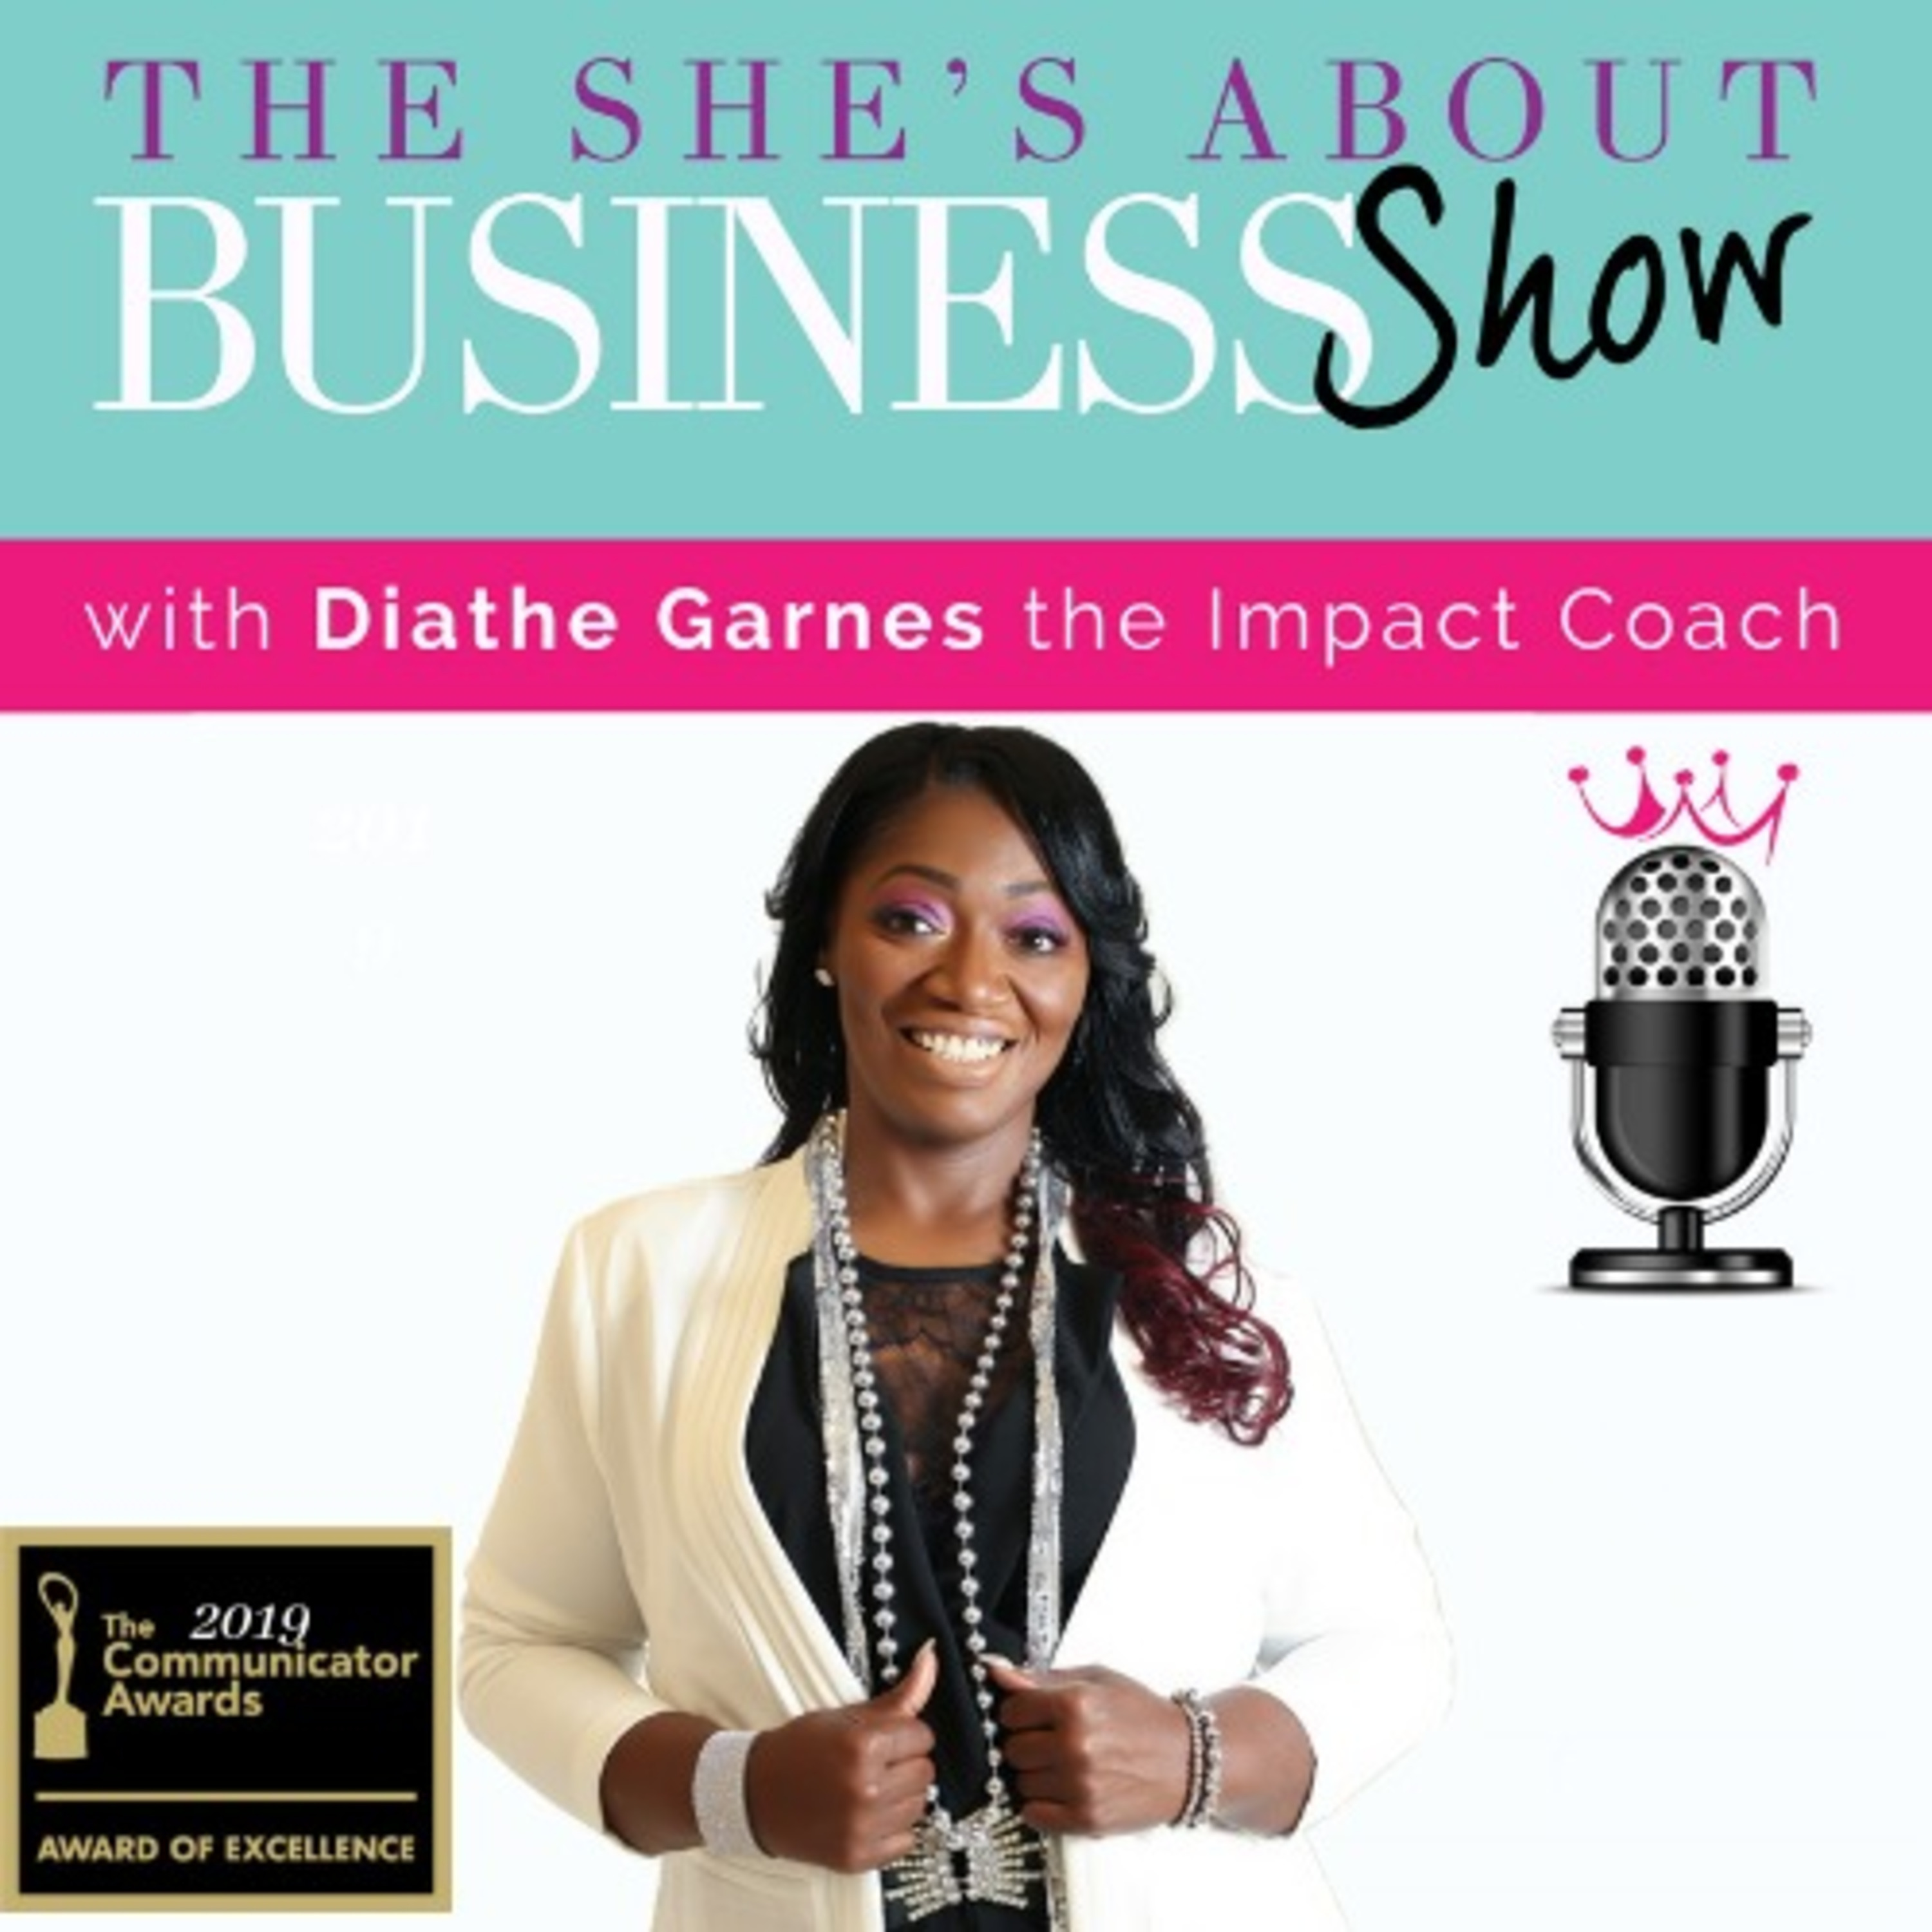 The She's About Business Show